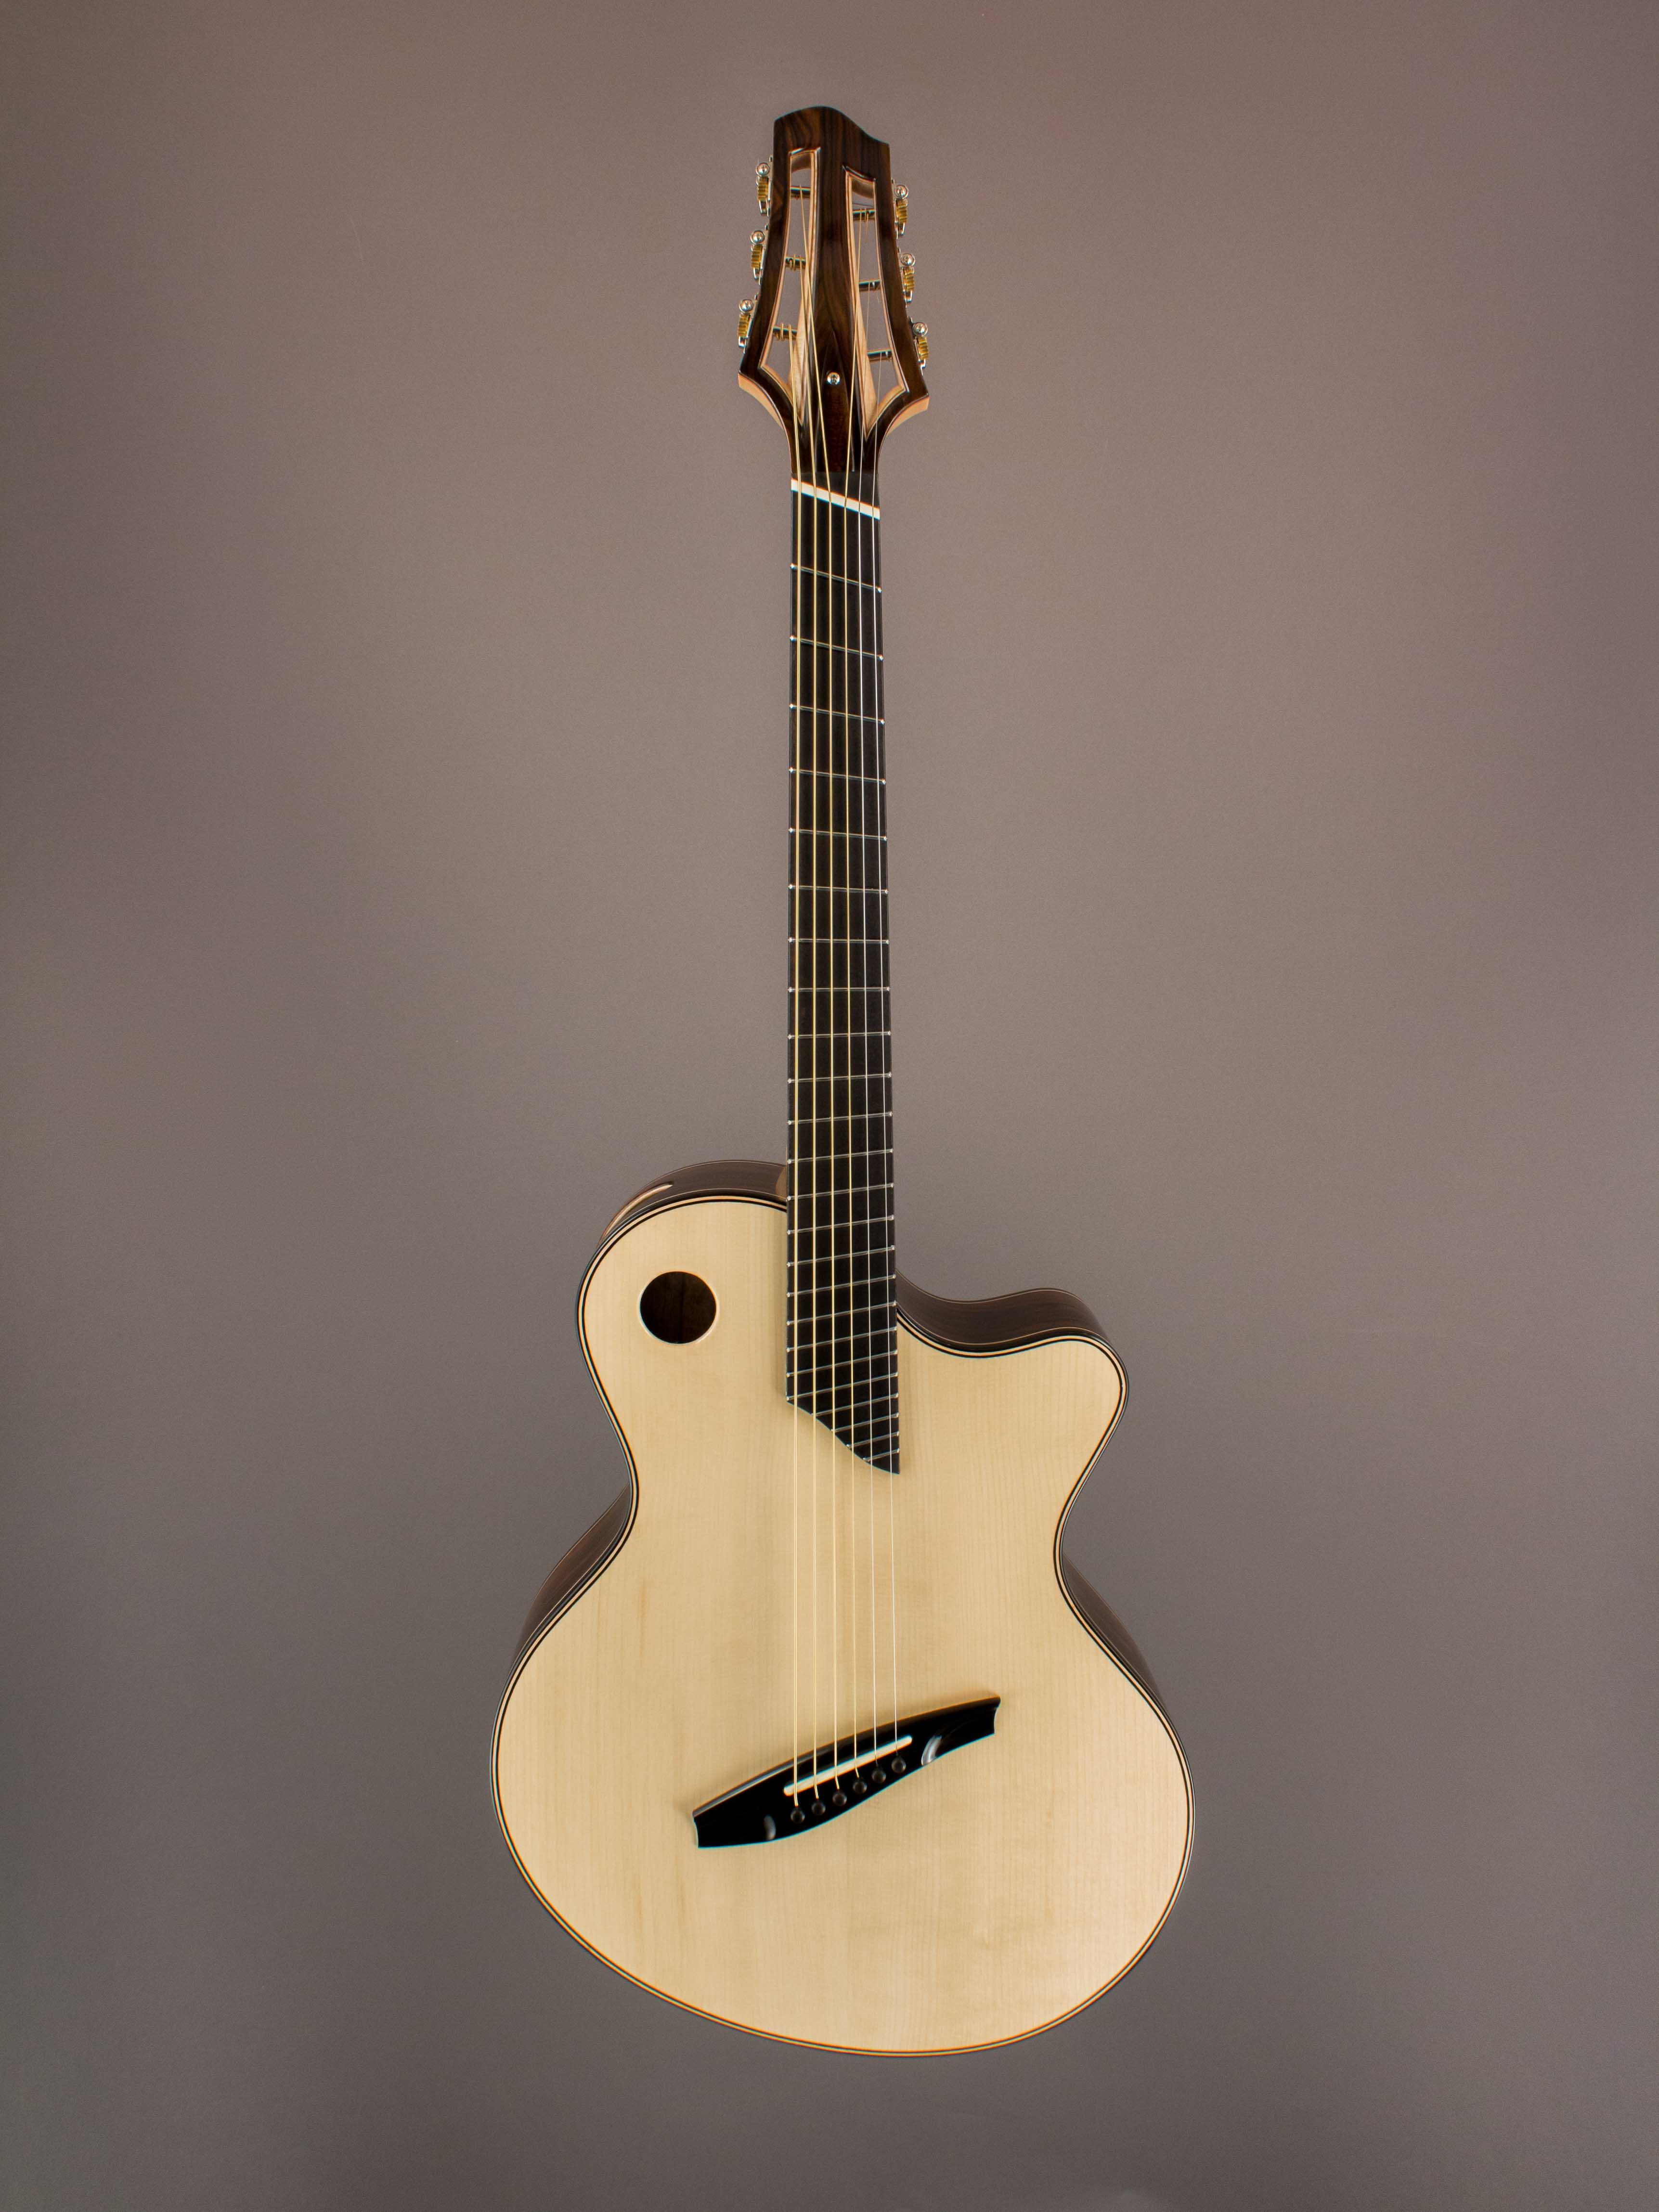 Lavoie Guitars